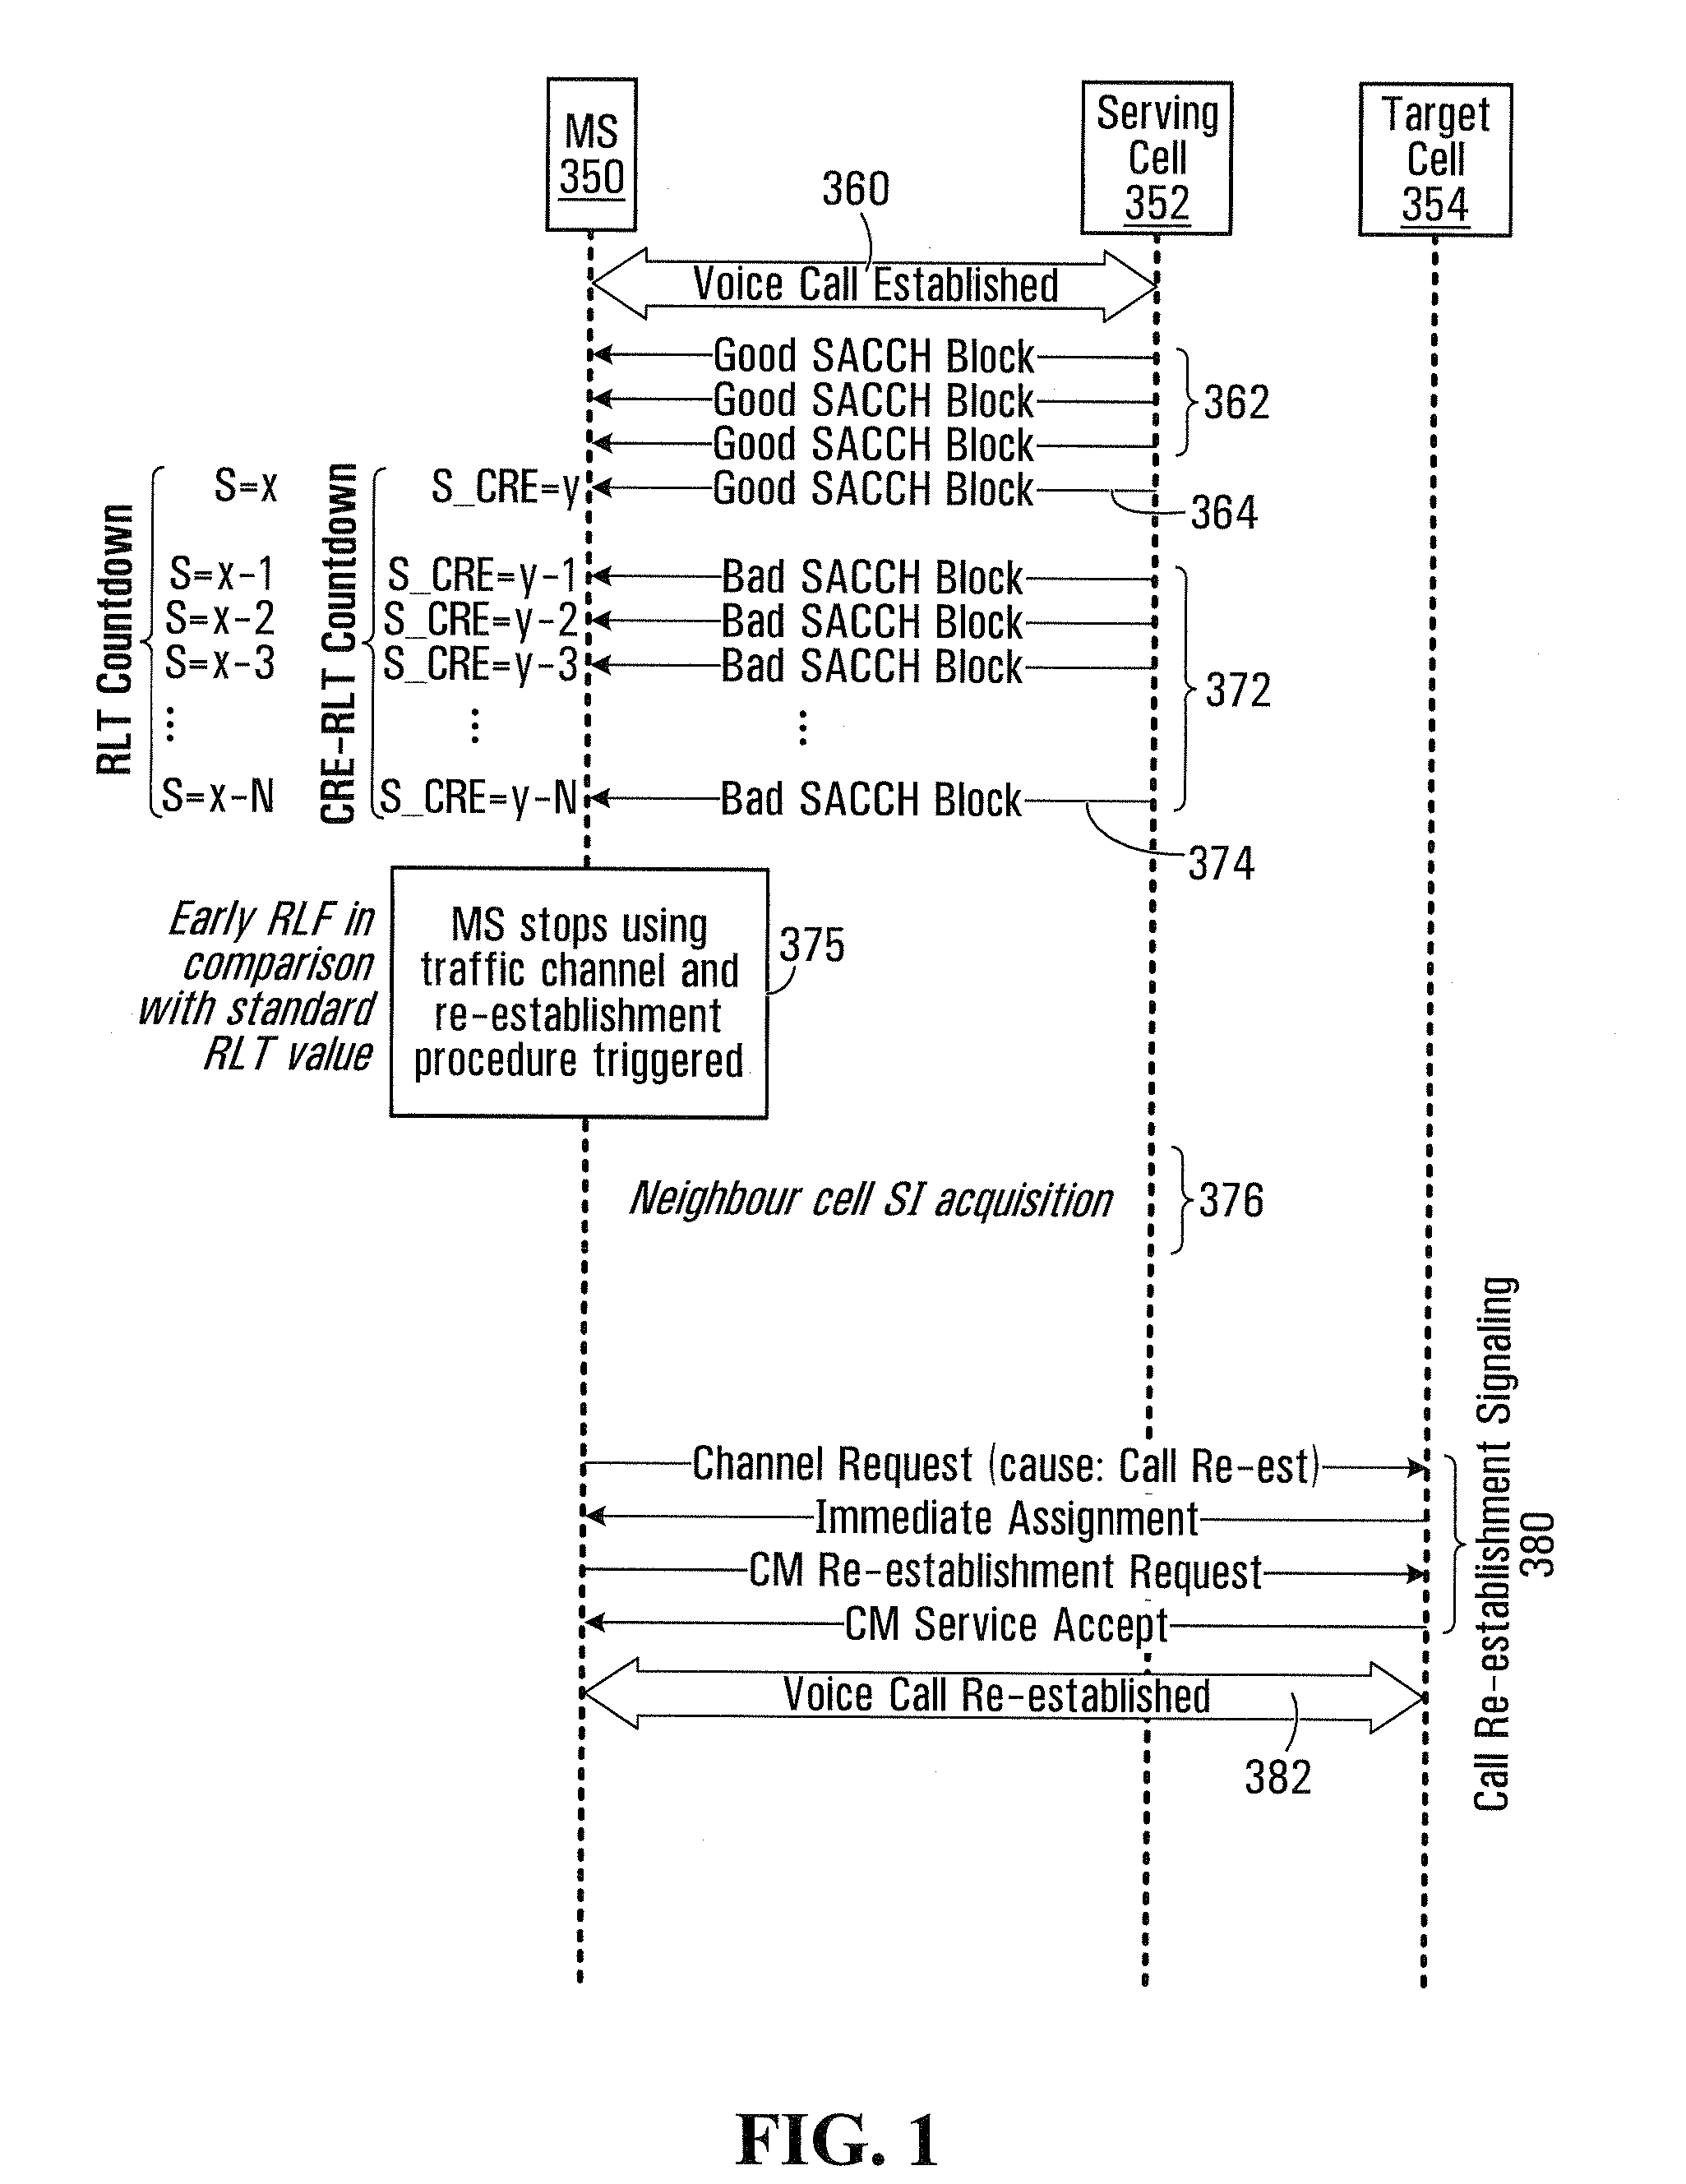 US20110053586A1 20110303 D00001?resize\=840%2C1088 valcom v 1030c wiring diagram on valcom images free download  at pacquiaovsvargaslive.co